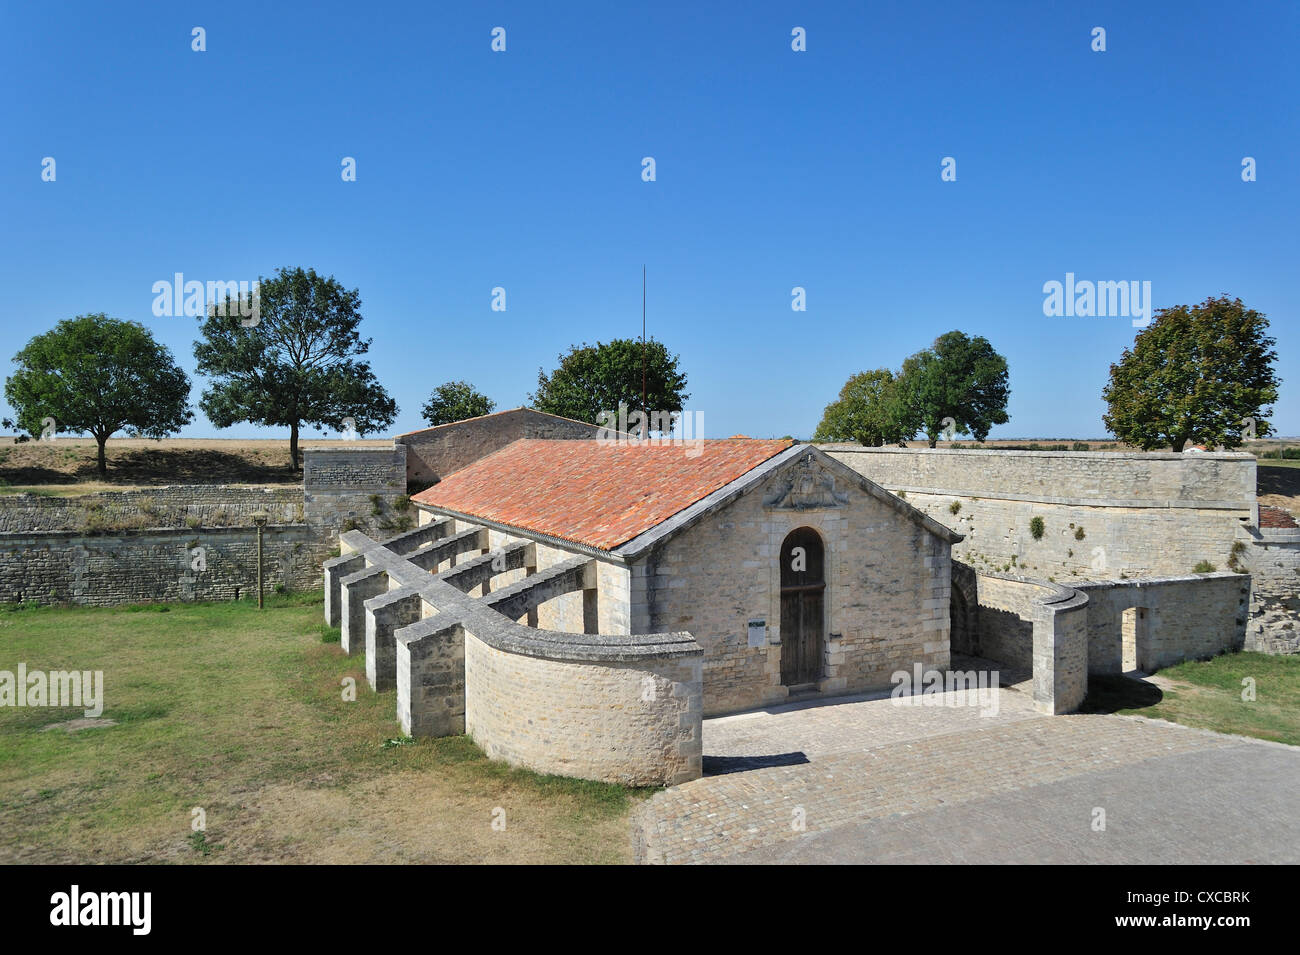 The Saint-Luc gunpowder magazine / poudrière with flying-buttresses at Brouage / Hiers-Brouage, Charente-Maritime, Stock Photo